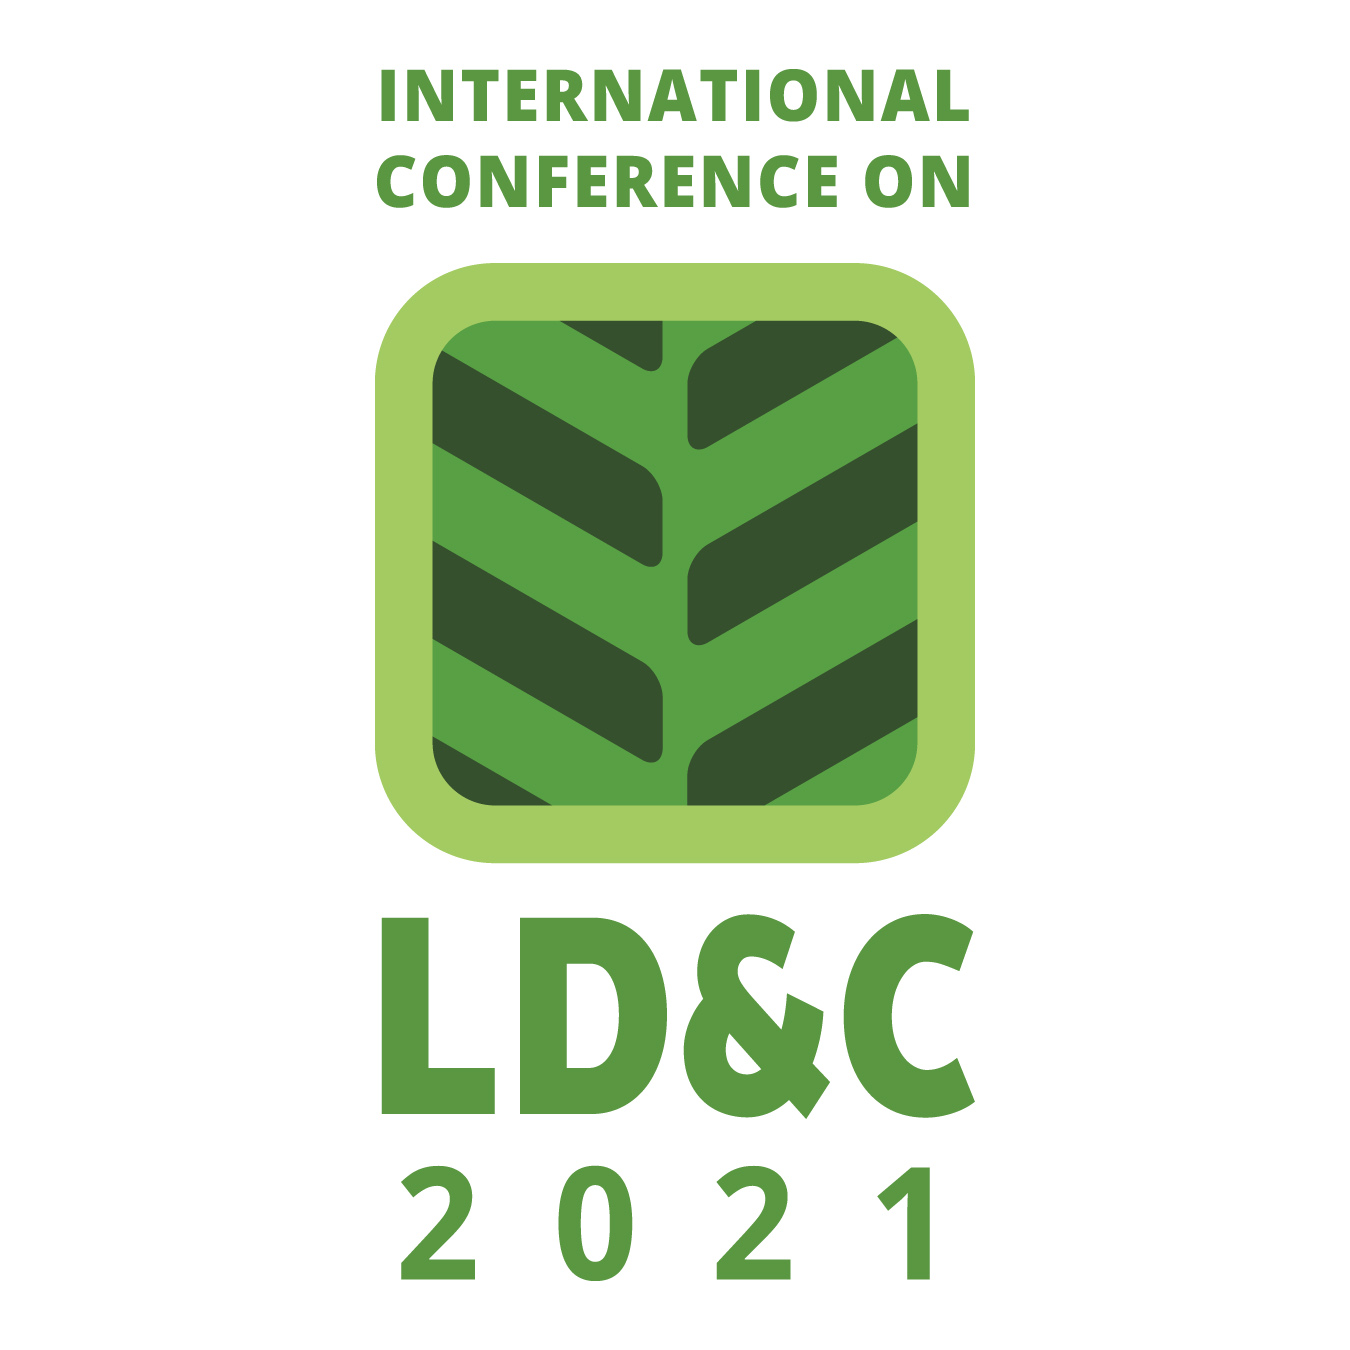 7th International Conference on Language Documentation & Conservation: Recognizing Relationships